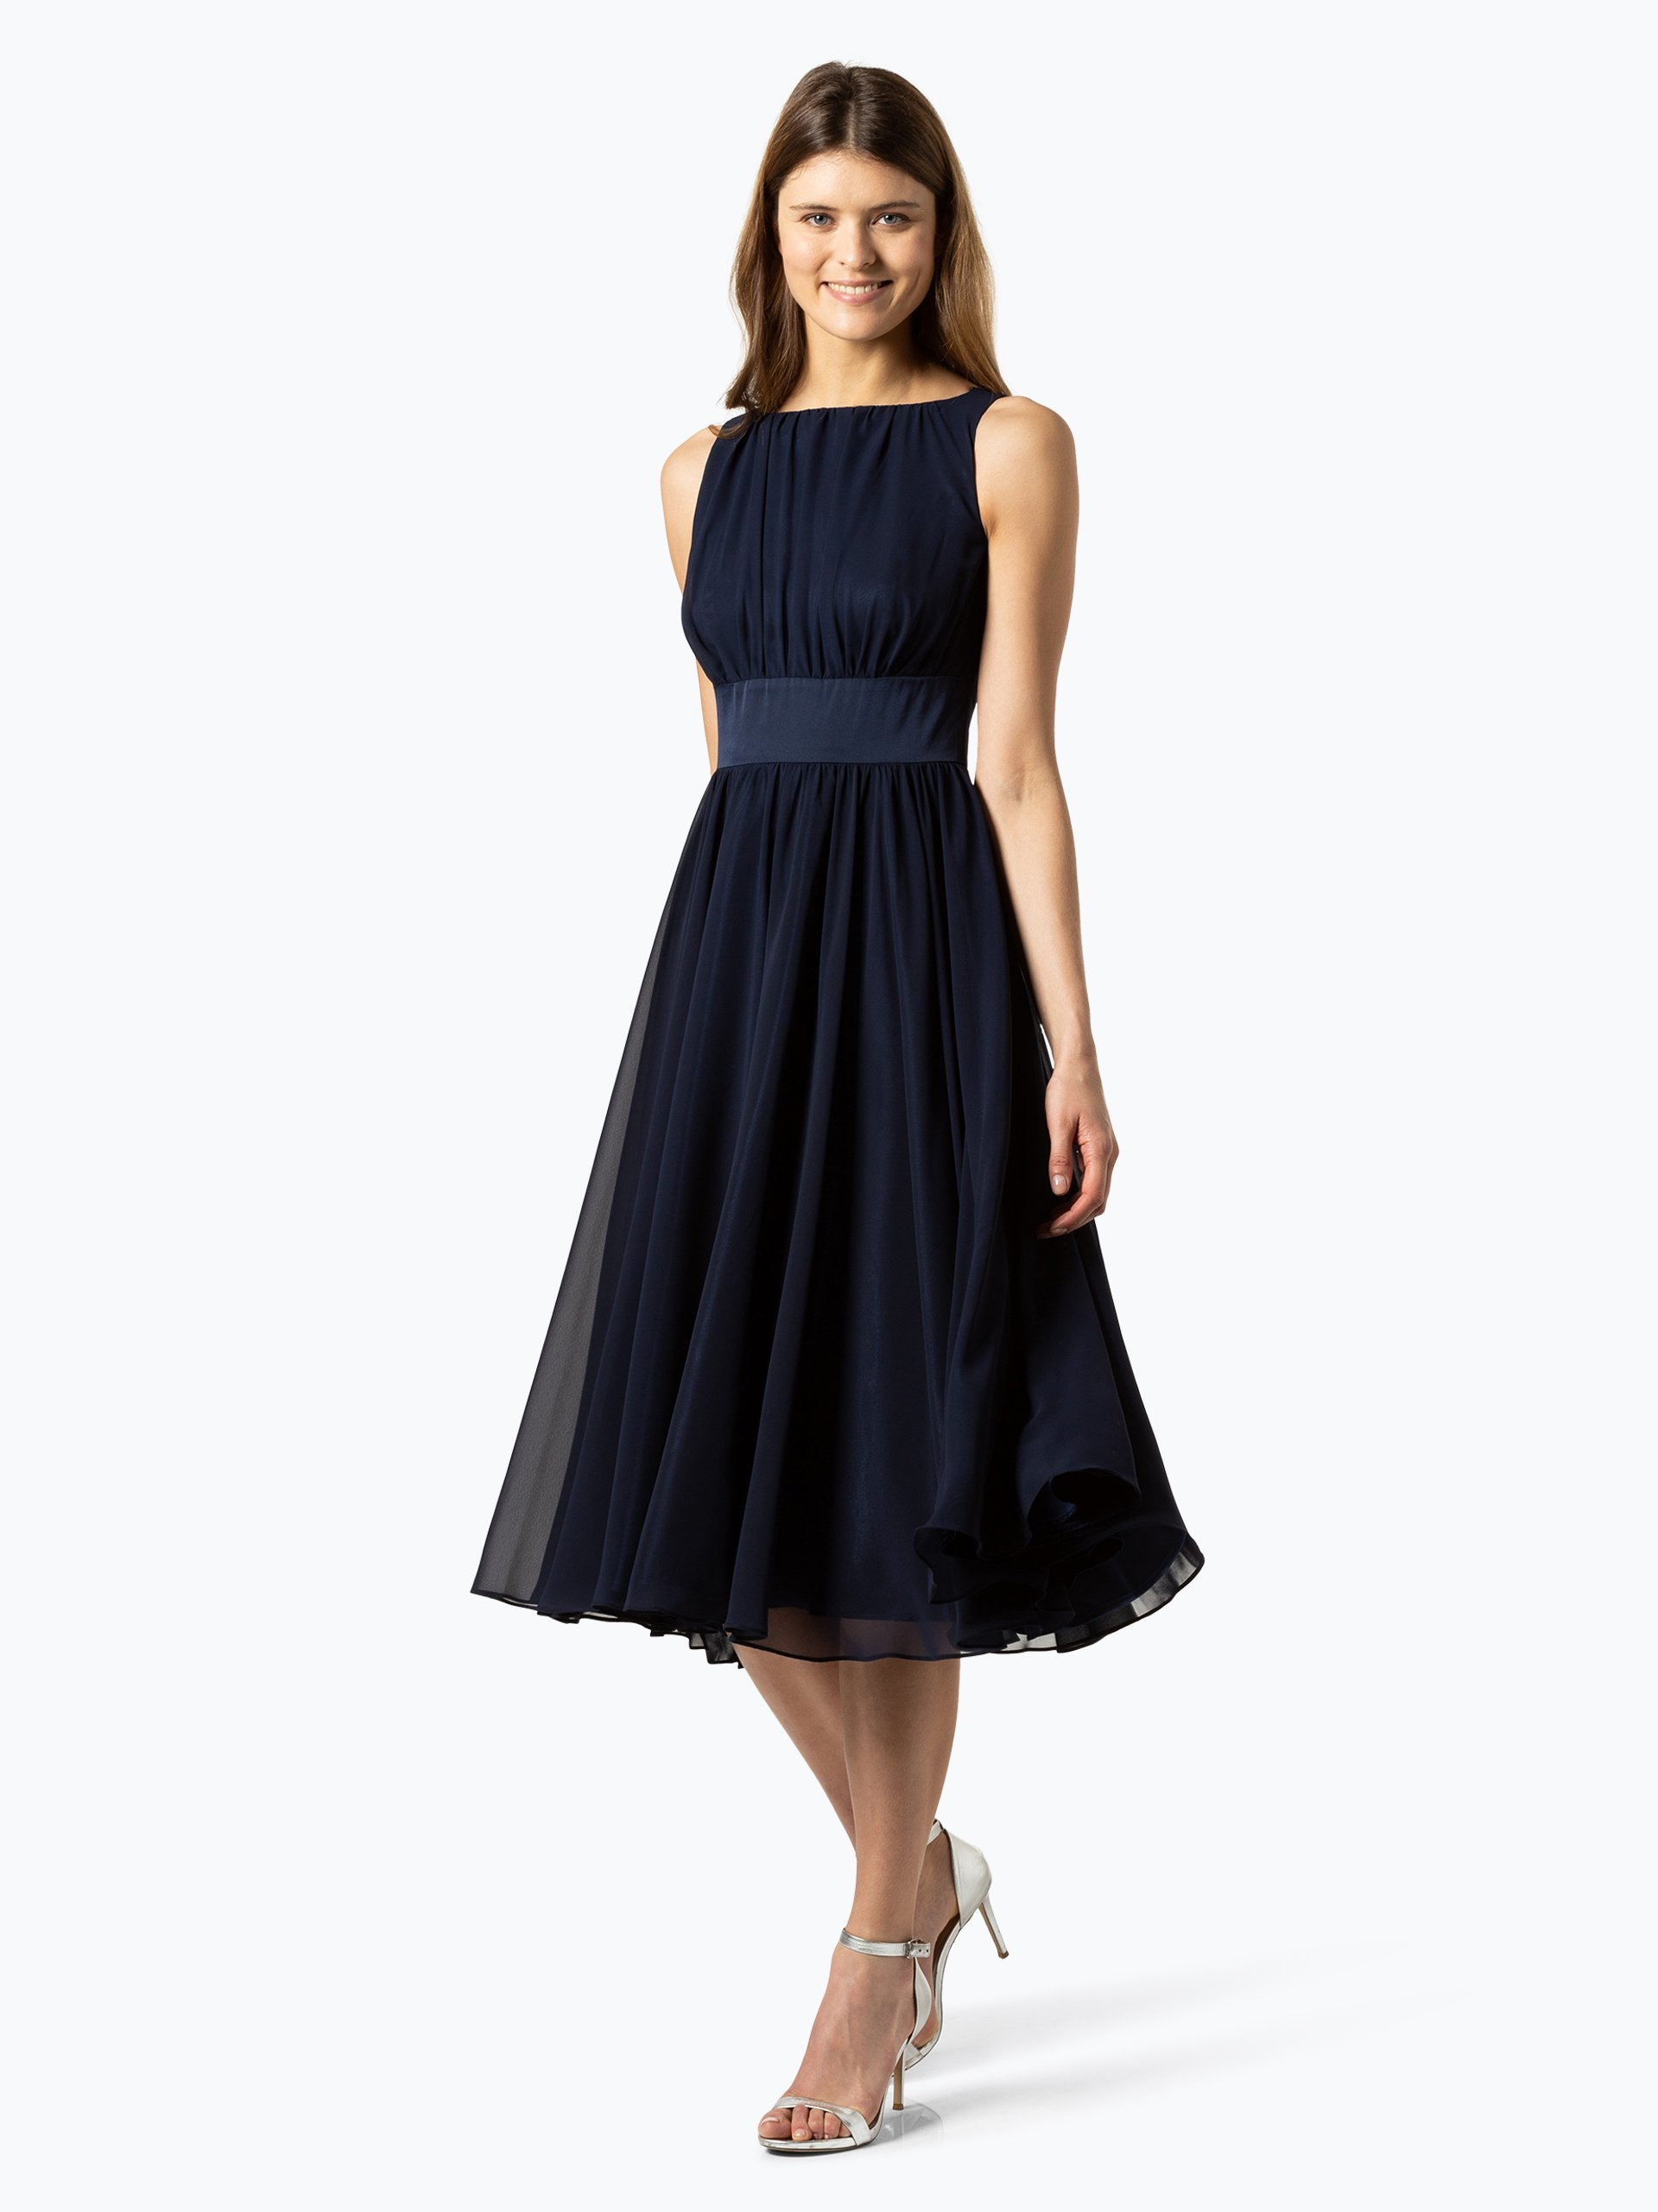 swing-damen-abendkleid_pdzoom_432052-000